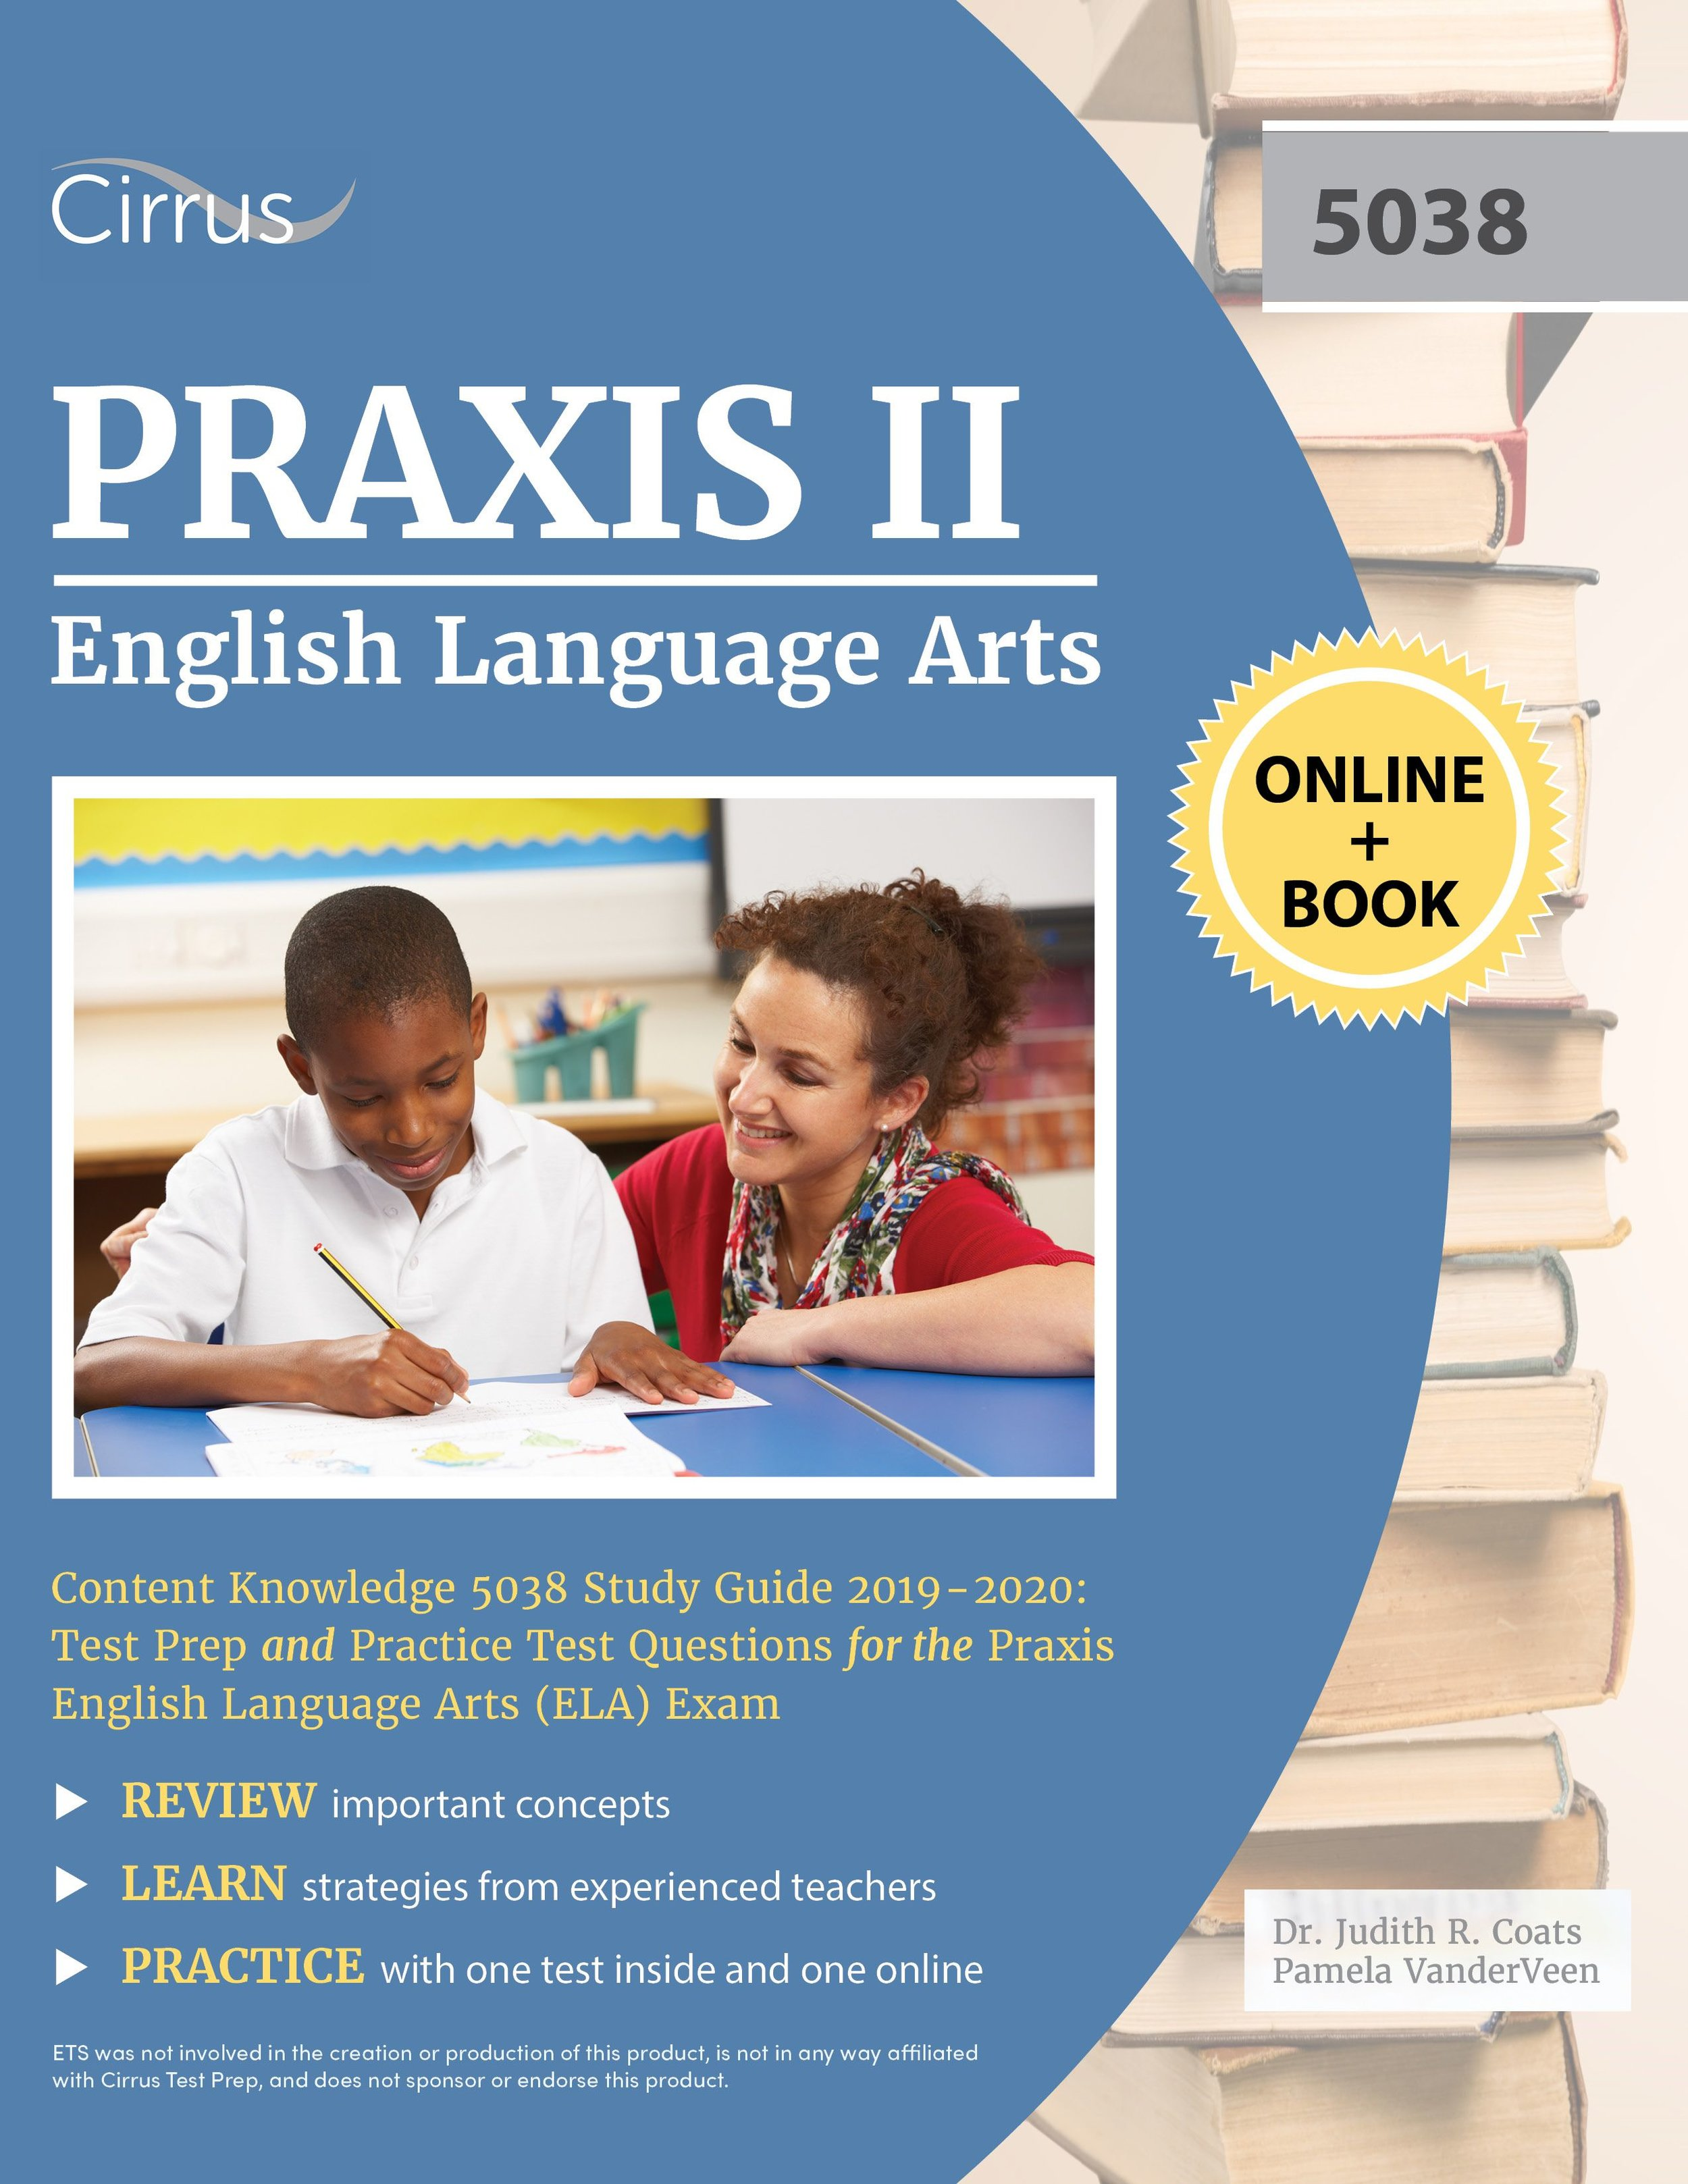 Praxis II English Language Arts Content Knowledge 5038 Study Guide 2019 – 2020